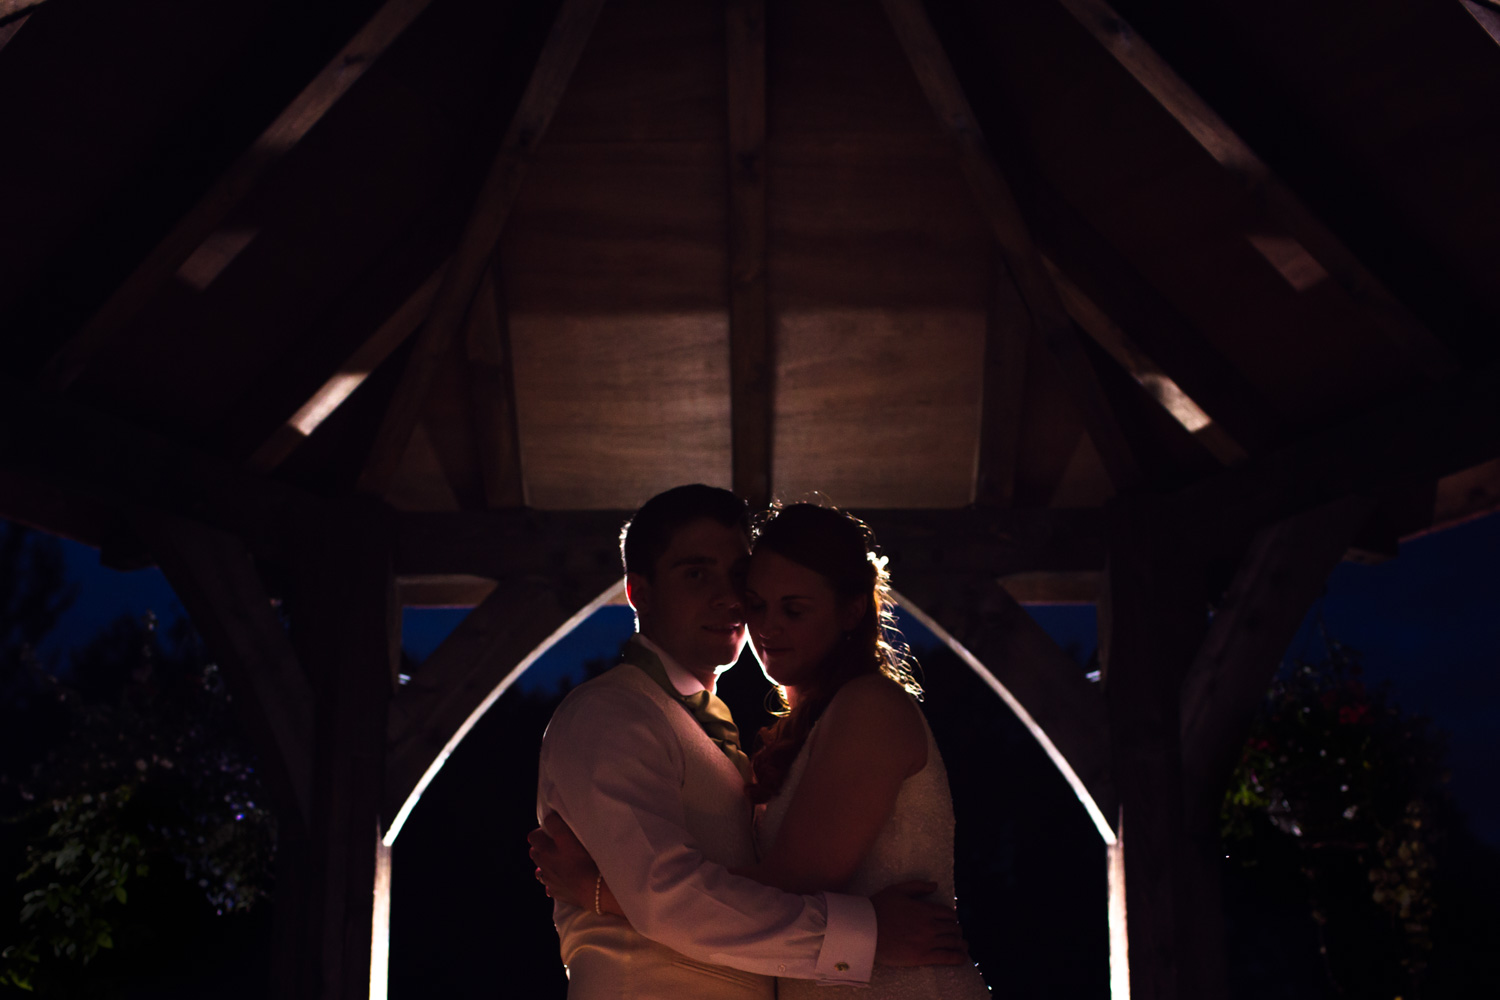 South-West-Wedding-photographer-Mark-Barnes-Yarlington-Barn-wedding-photography-83.jpg